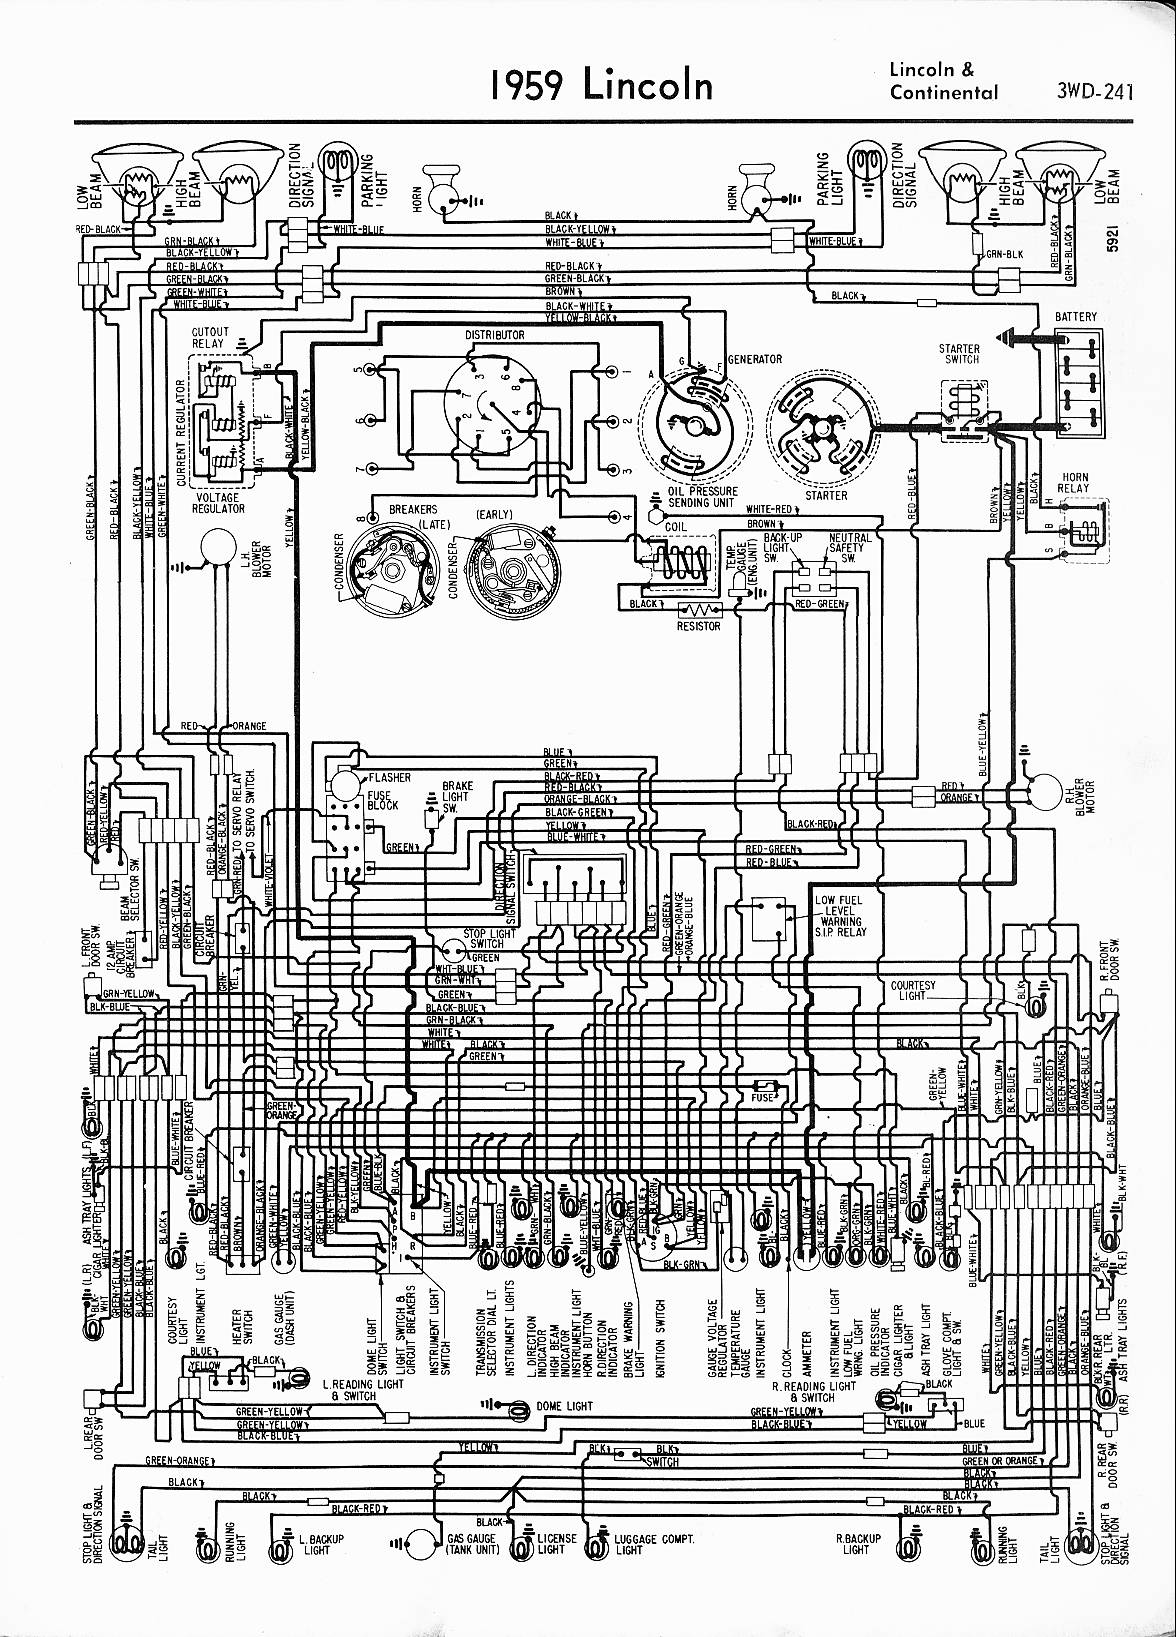 2007 audi a6 fuse box diagram